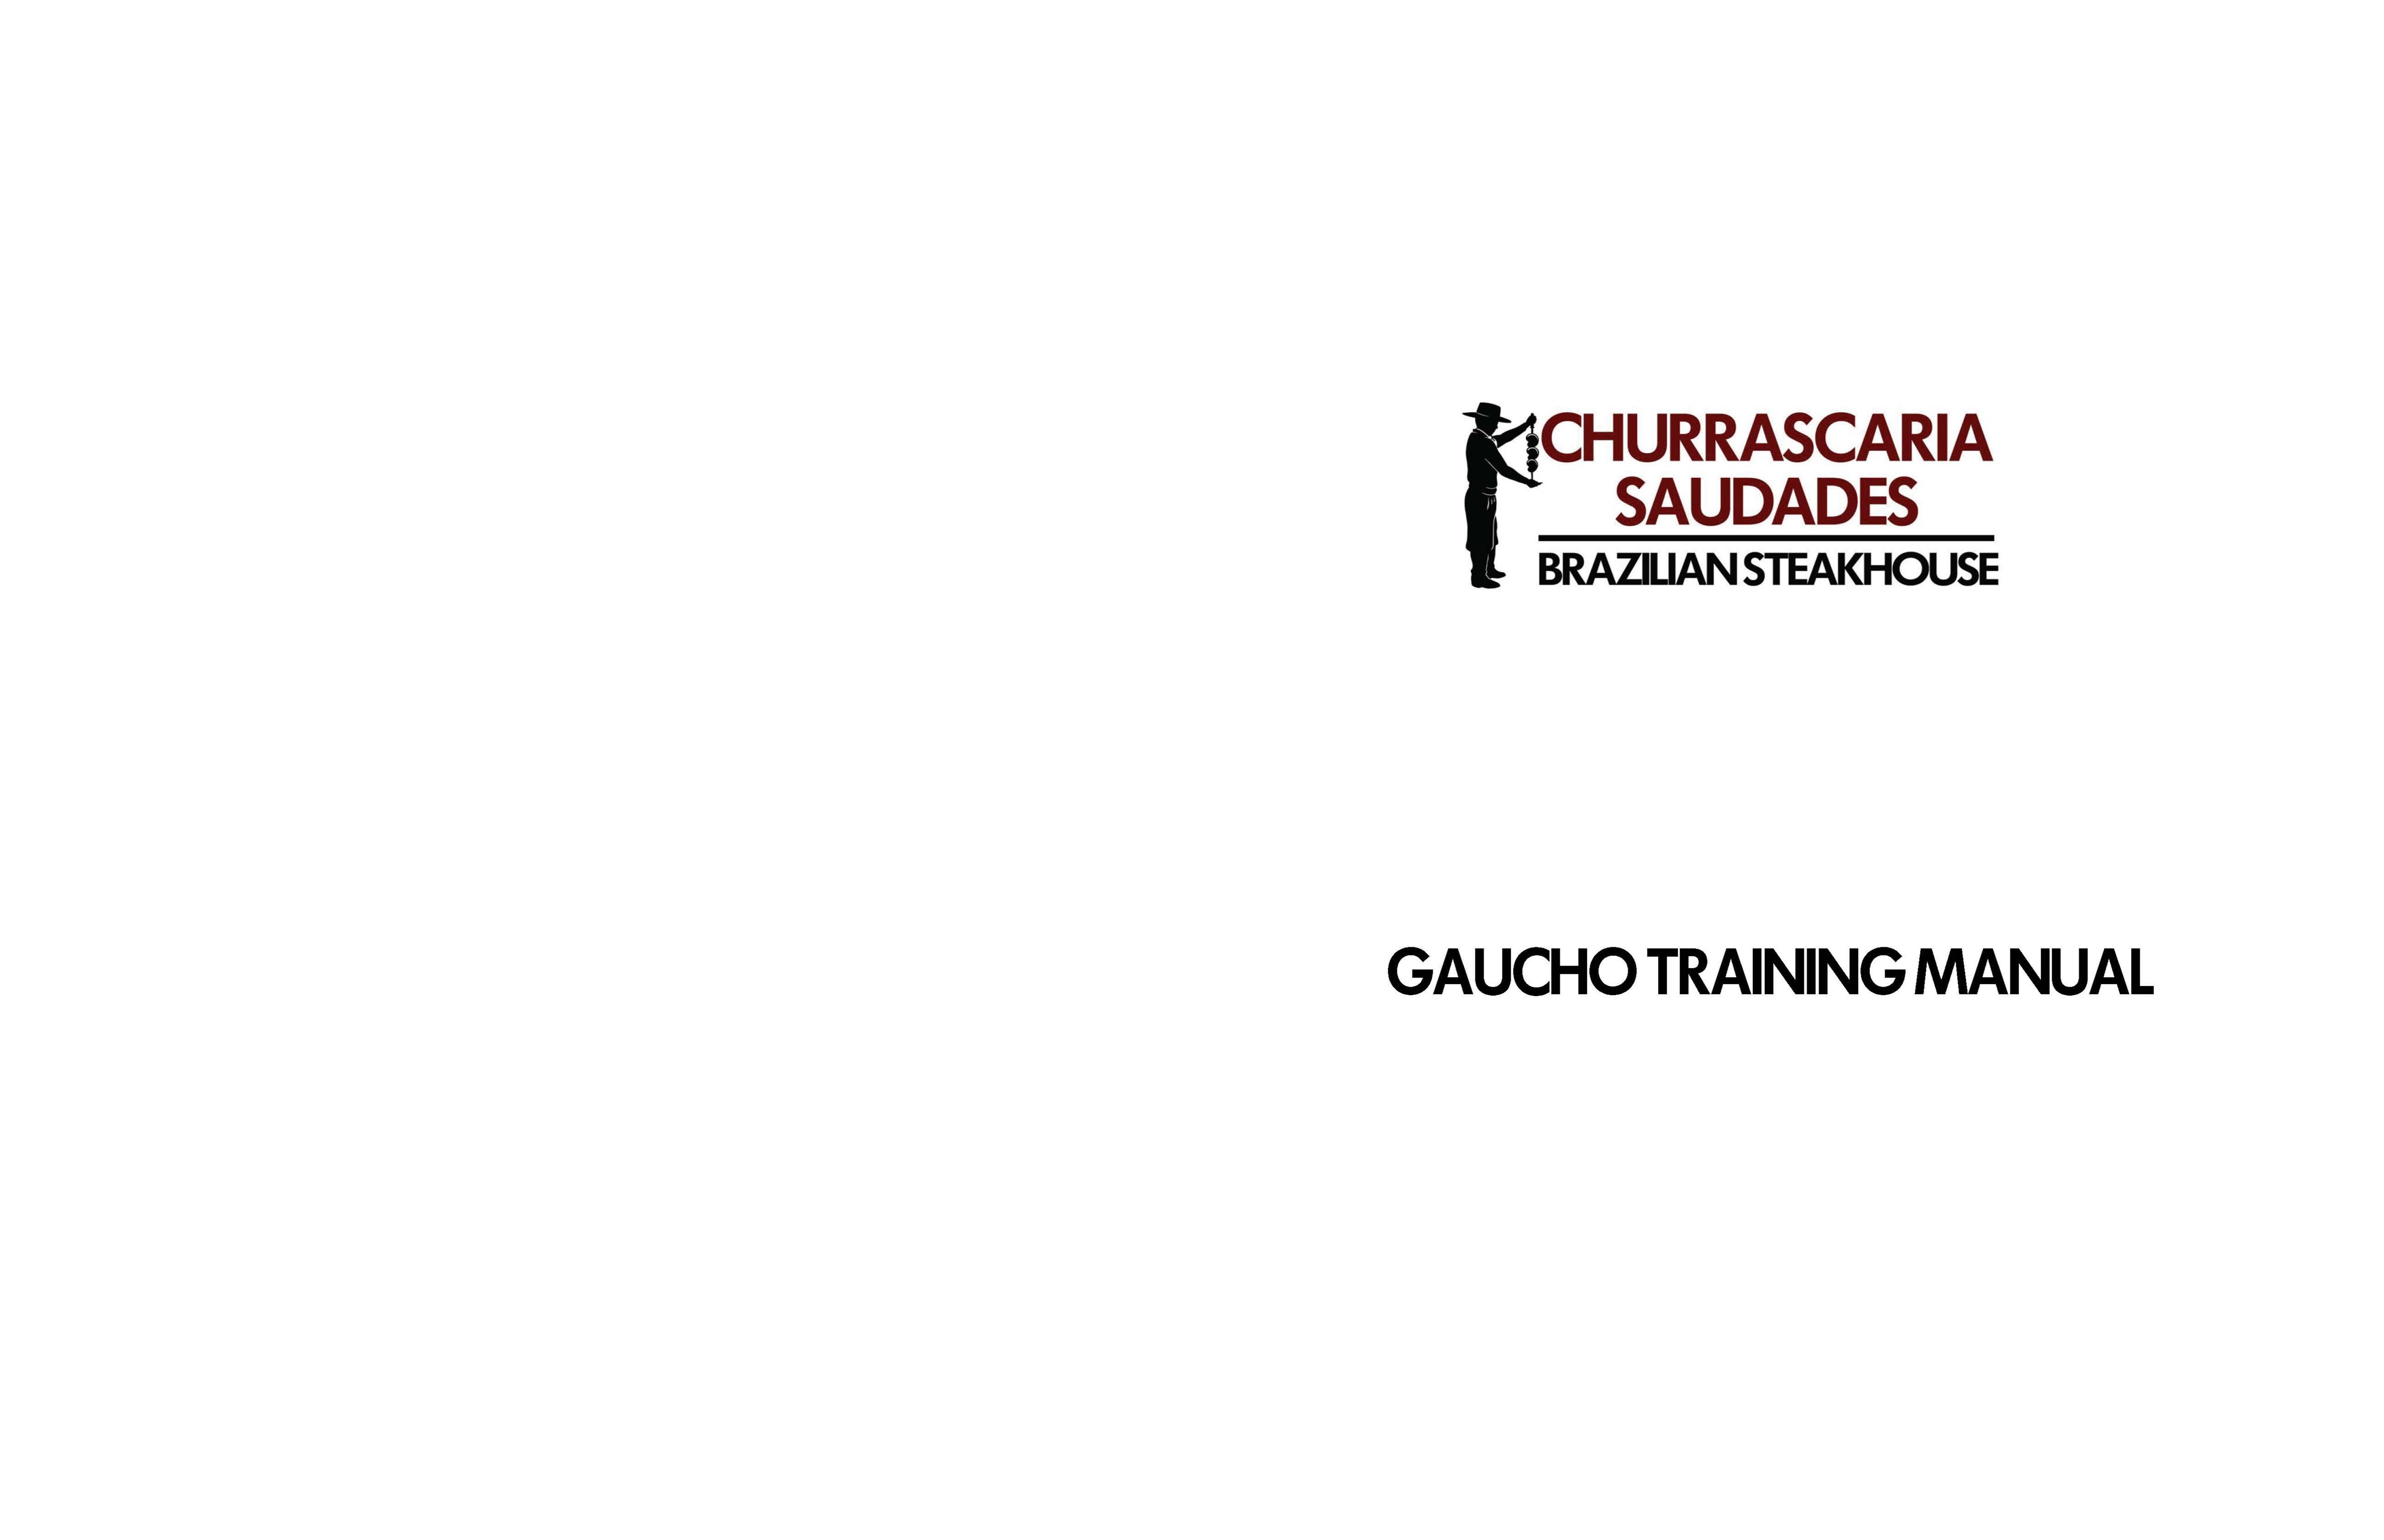 GAUCHO TRAINING MANUAL cover image